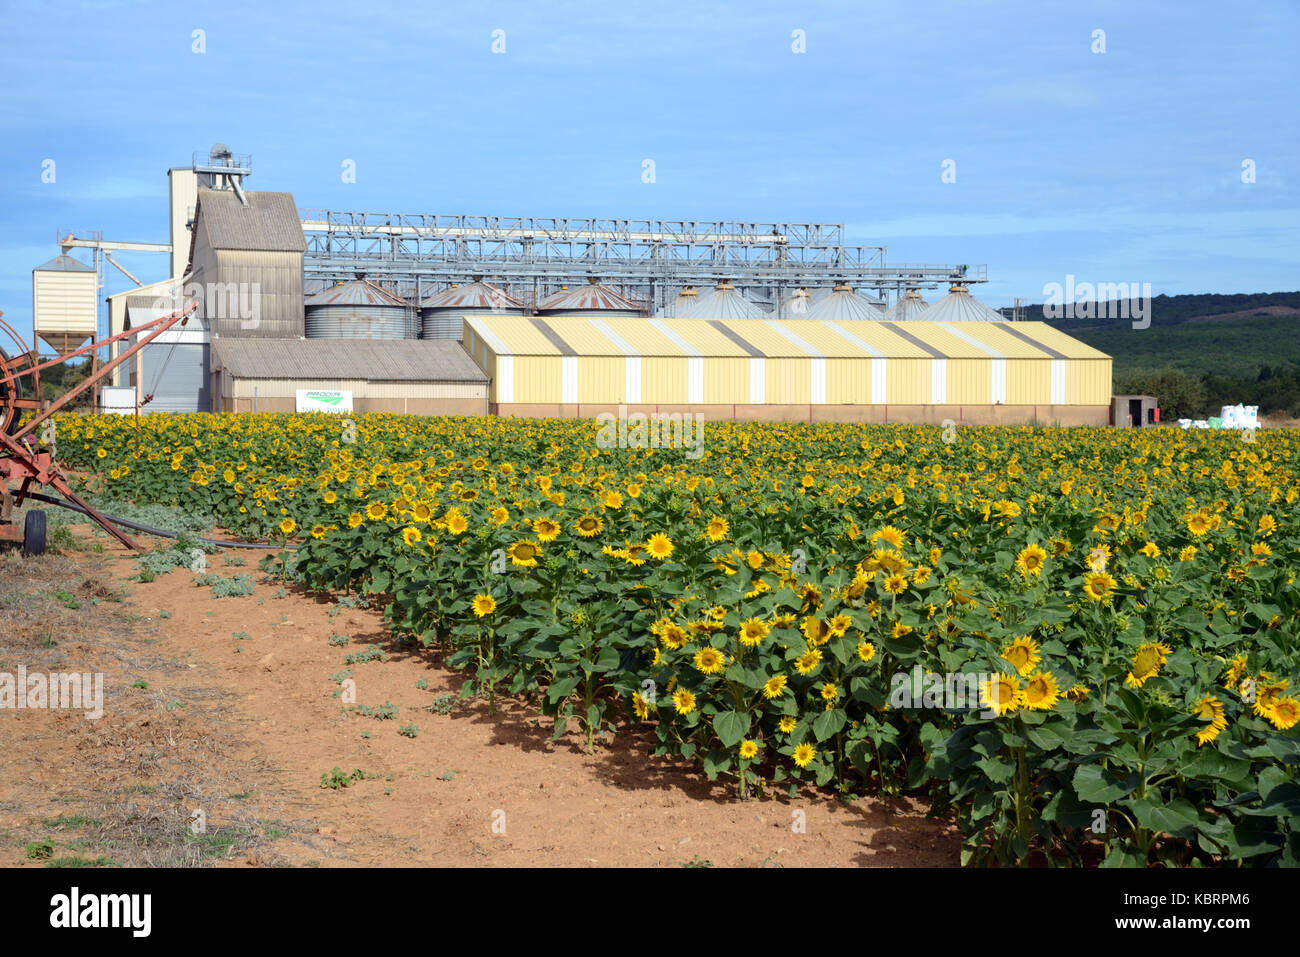 Sunflower Field & Agricultural Building or Silo near Rians in the Var Département Provence France - Stock Image